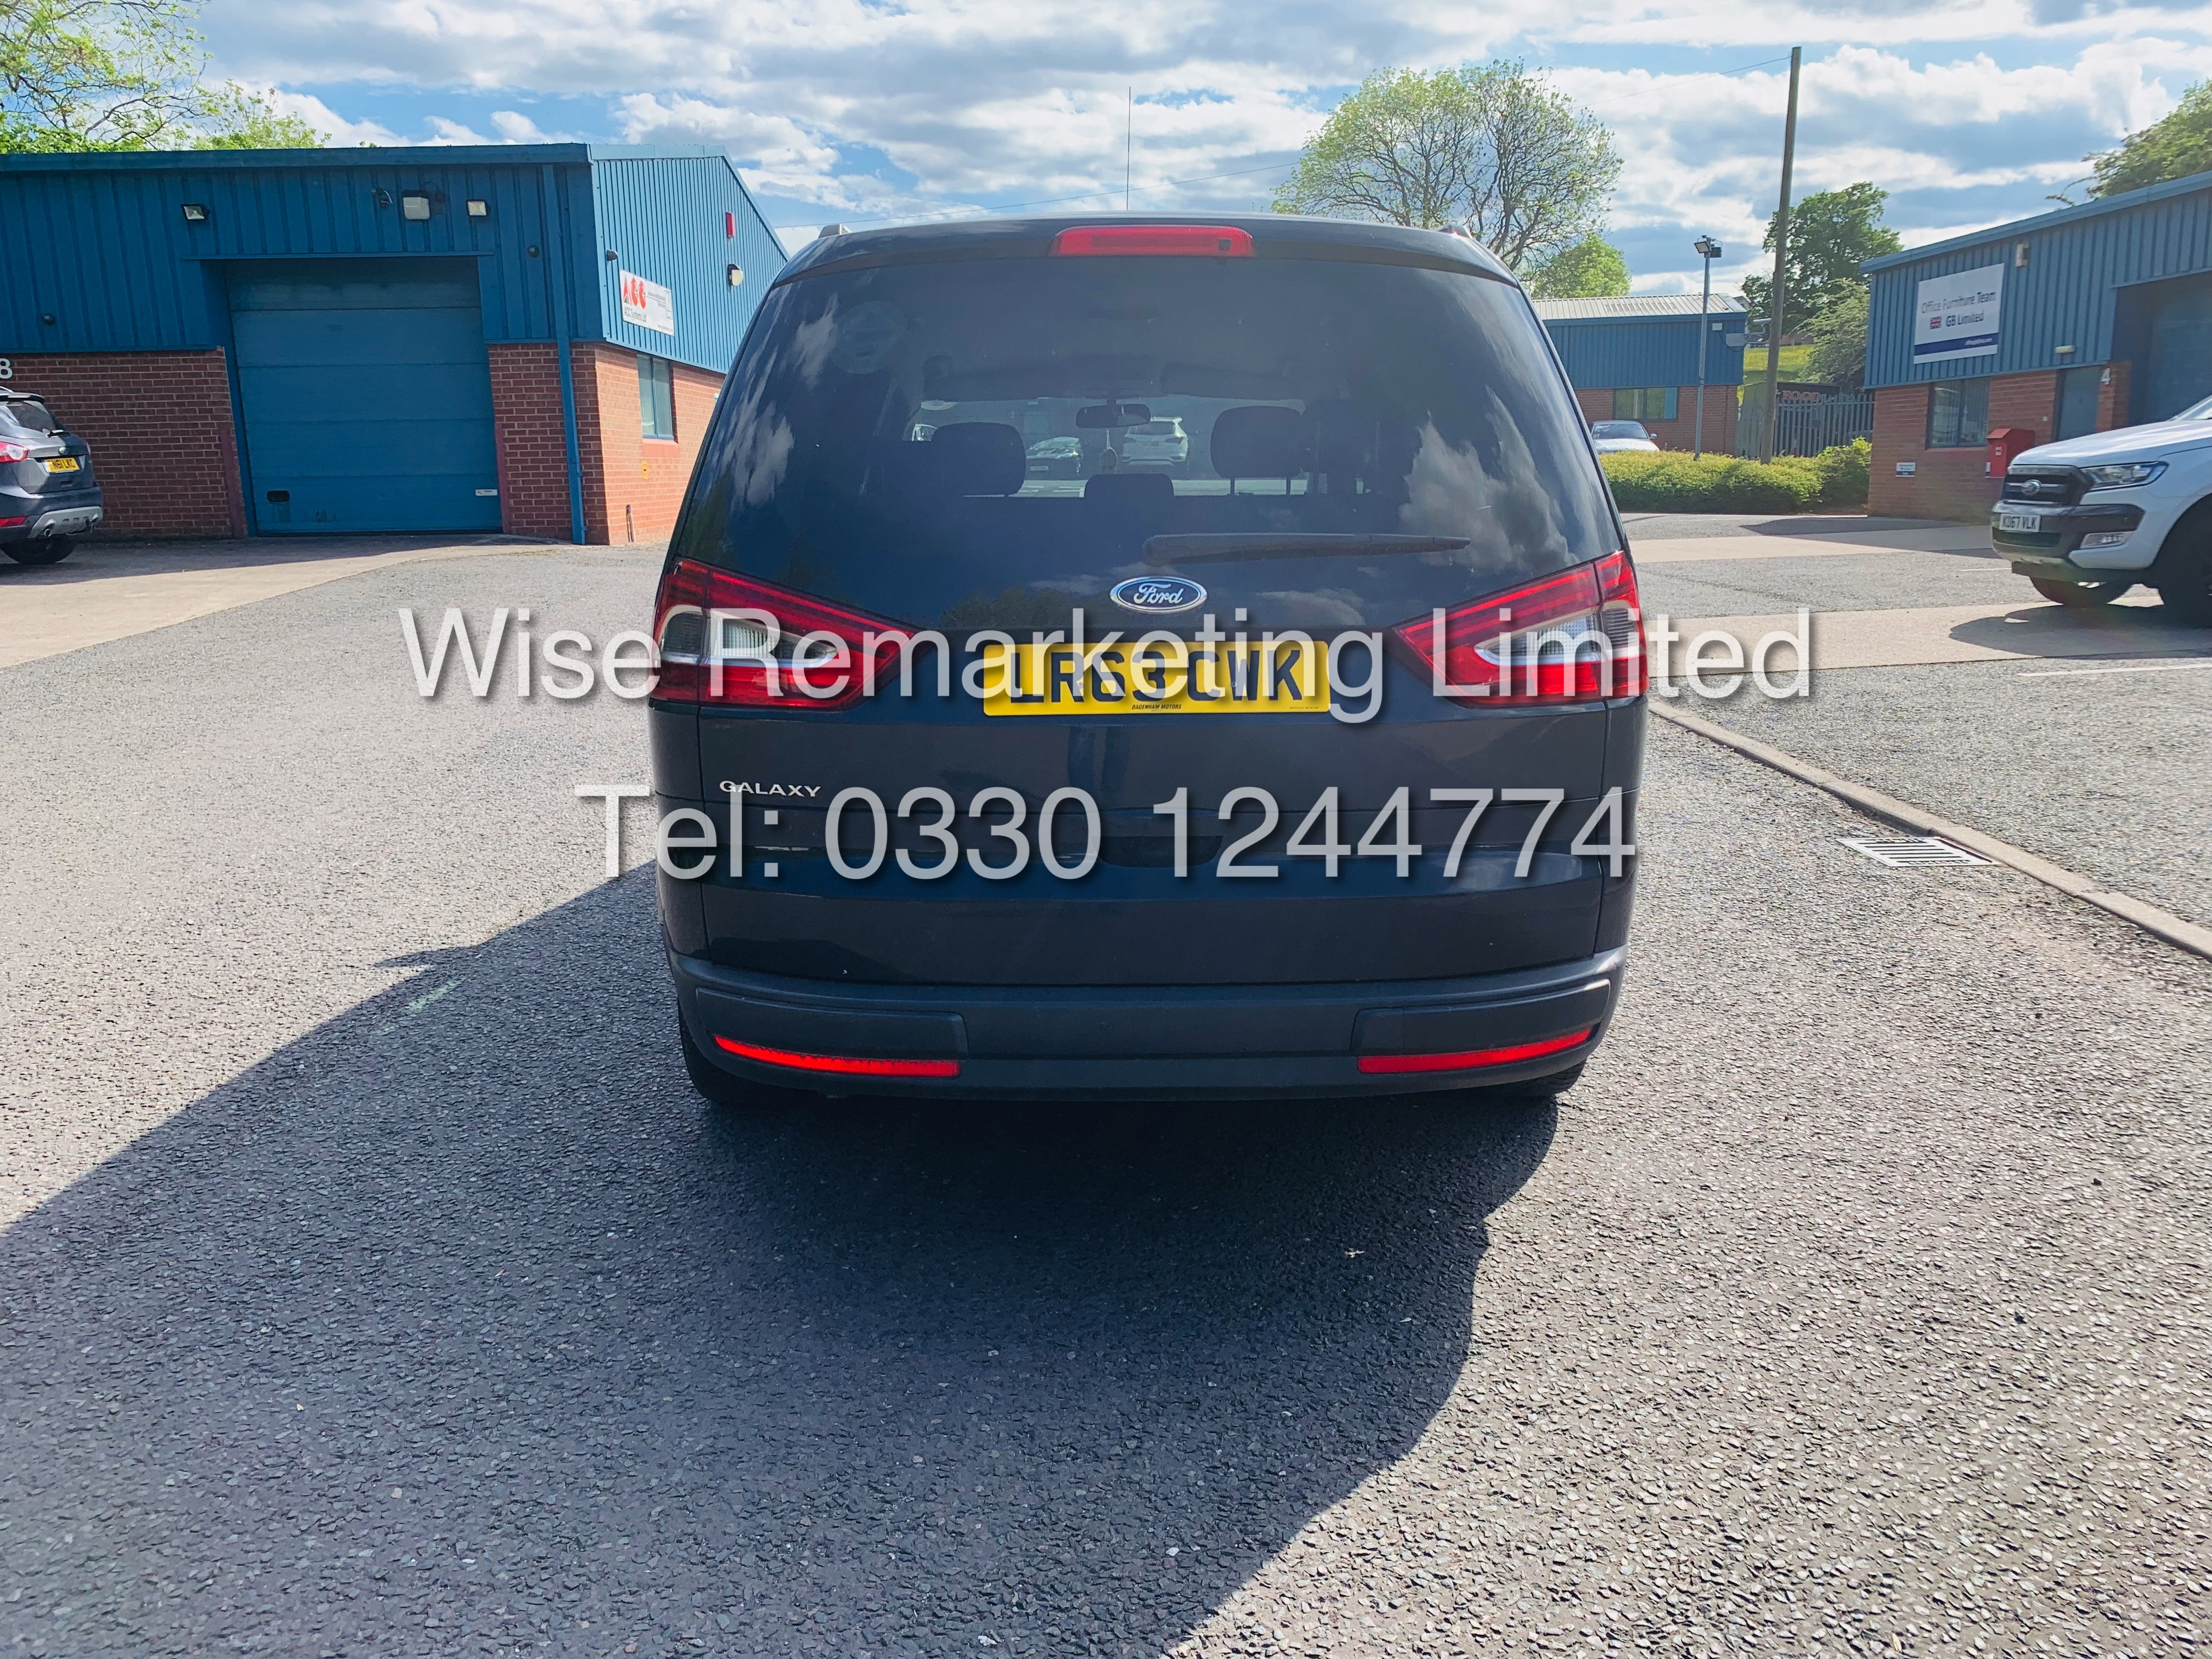 FORD GALAXY ZETEC 2.0L TDCI AUTO 7 SEATER MPV 63 REG *1 OWNER* - Image 5 of 18